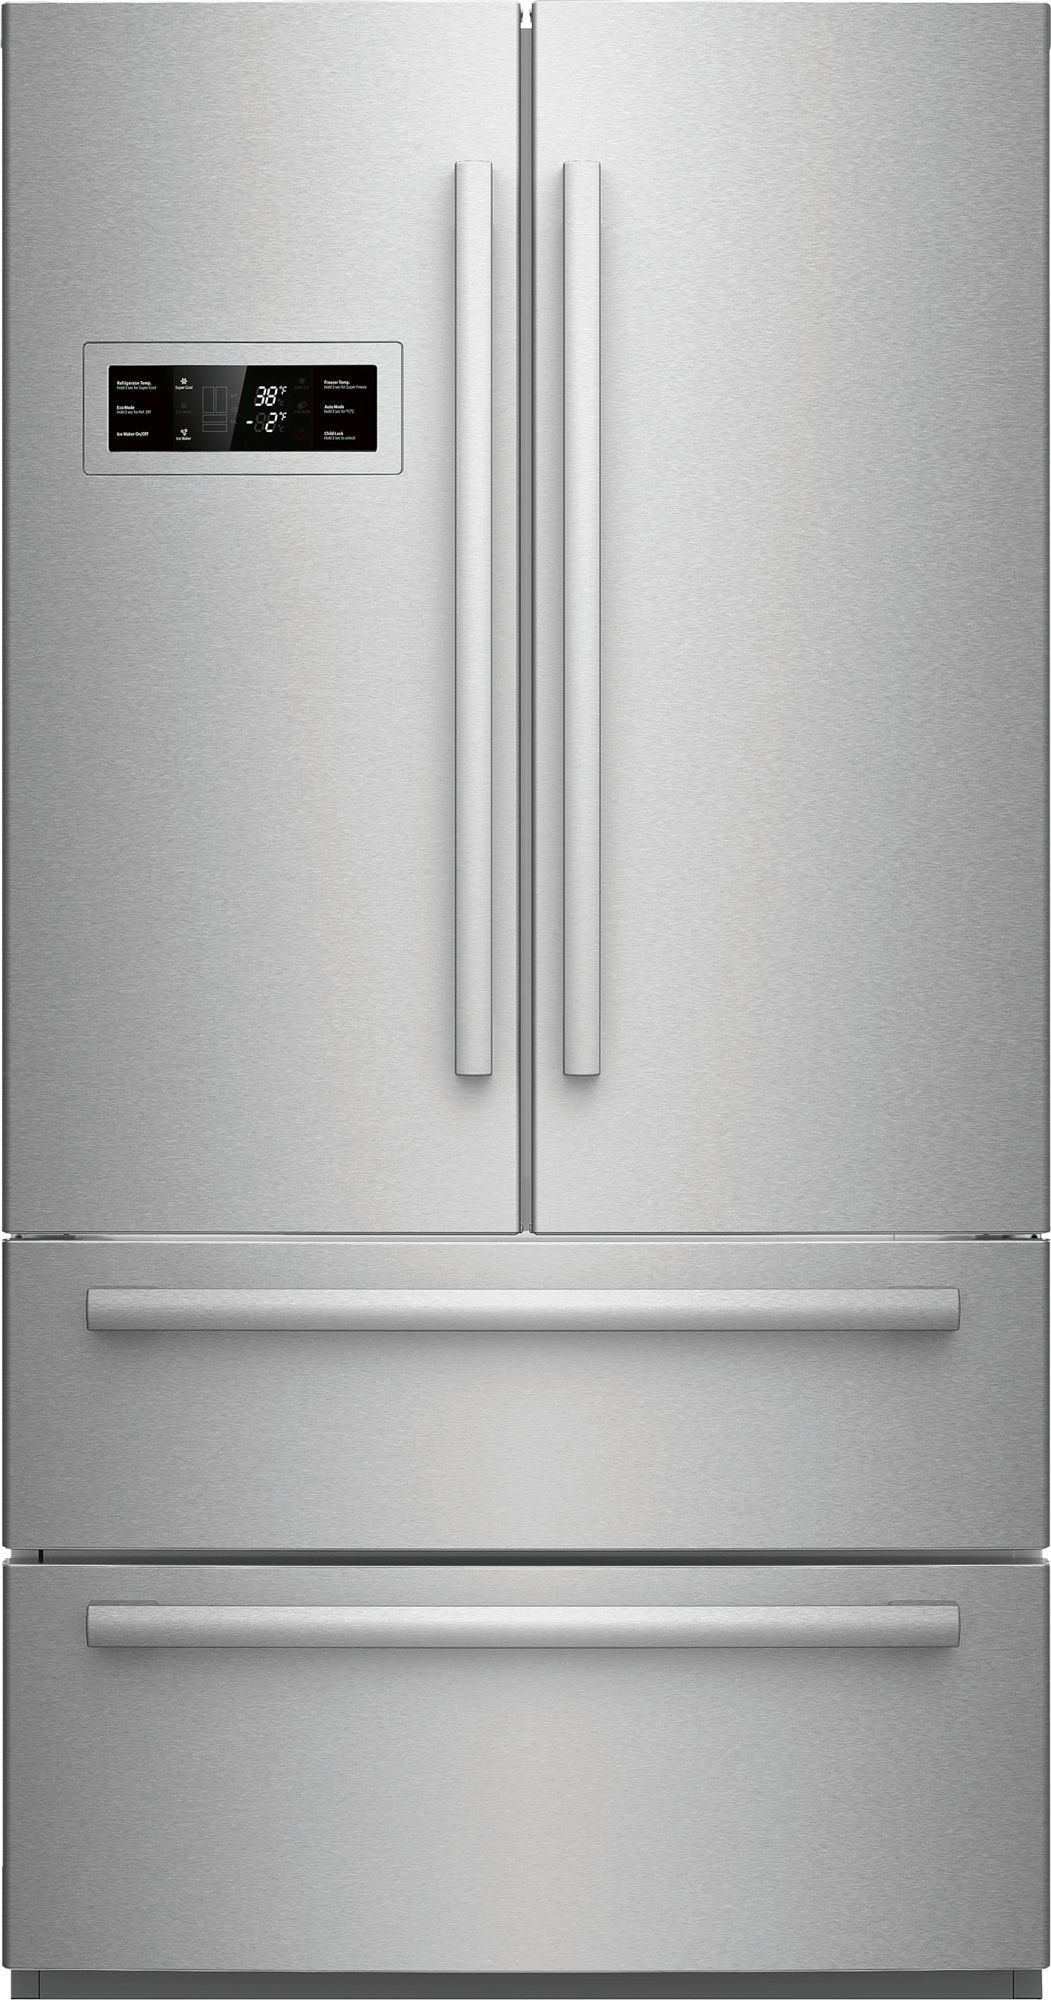 Counter depth refrigerator ft counter depth french door refrigerator stainless steel rubansaba